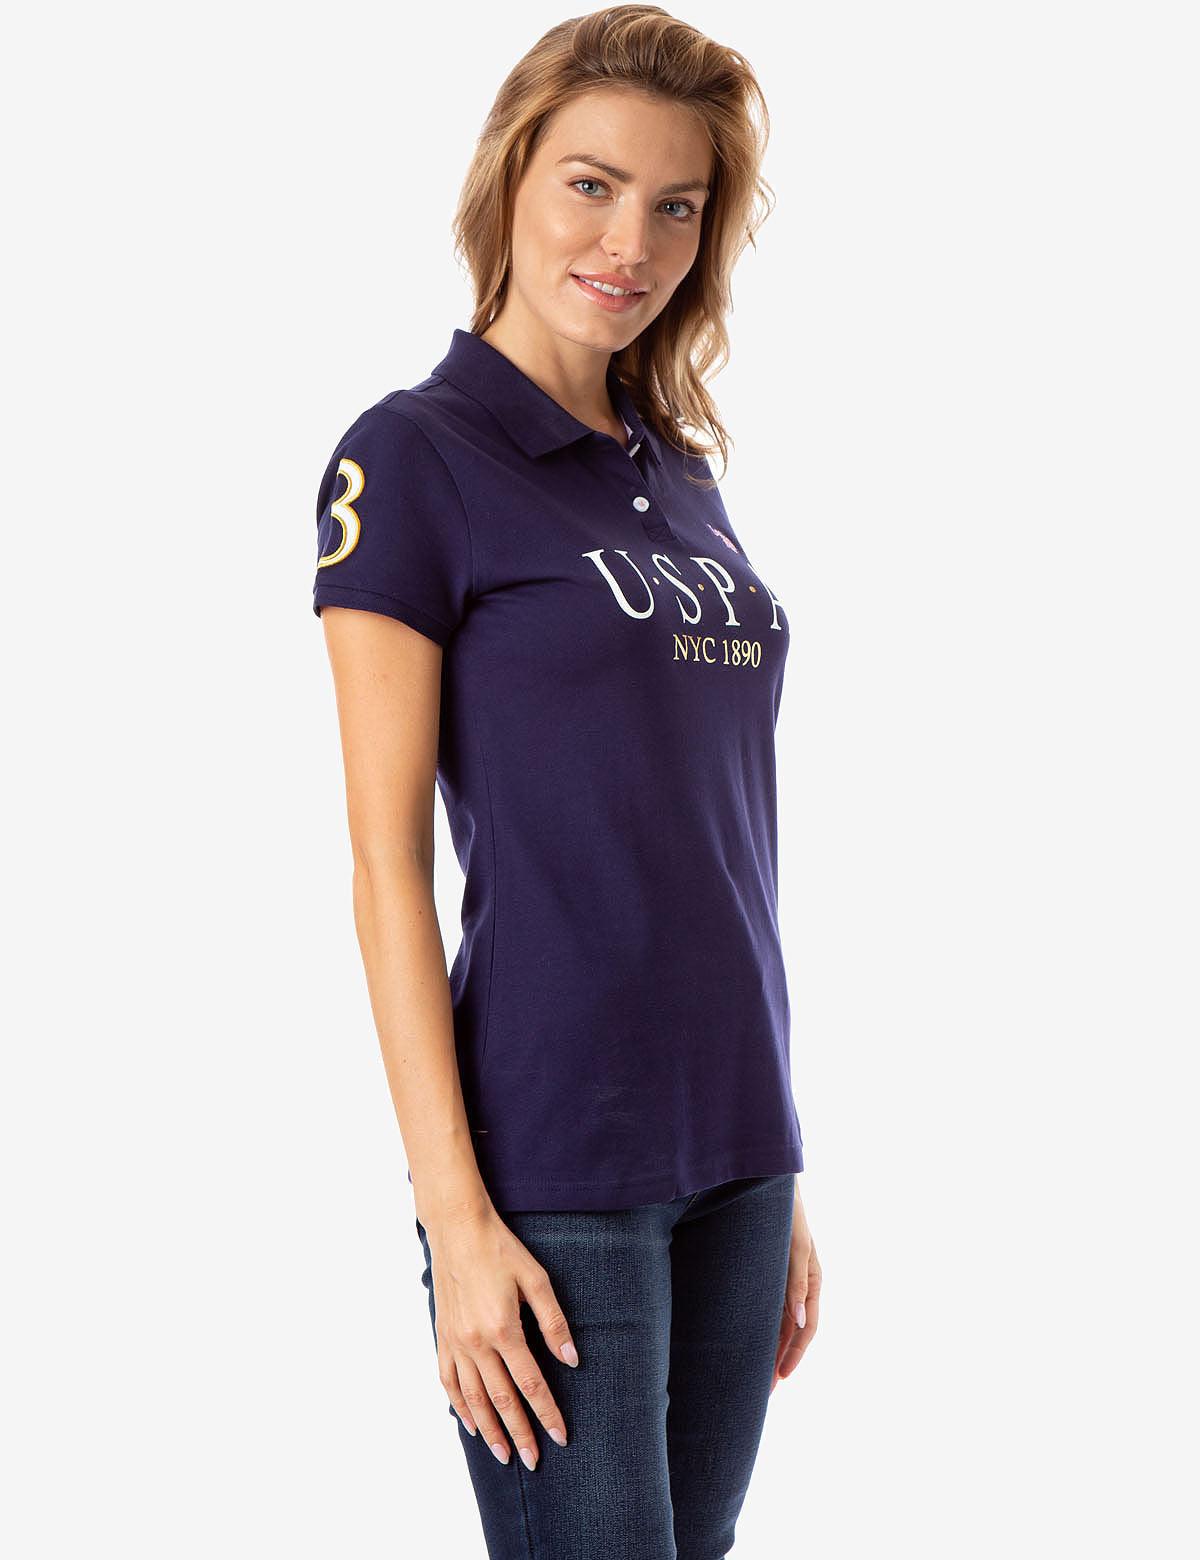 USPA NYC POLO SHIRT - U.S. Polo Assn.